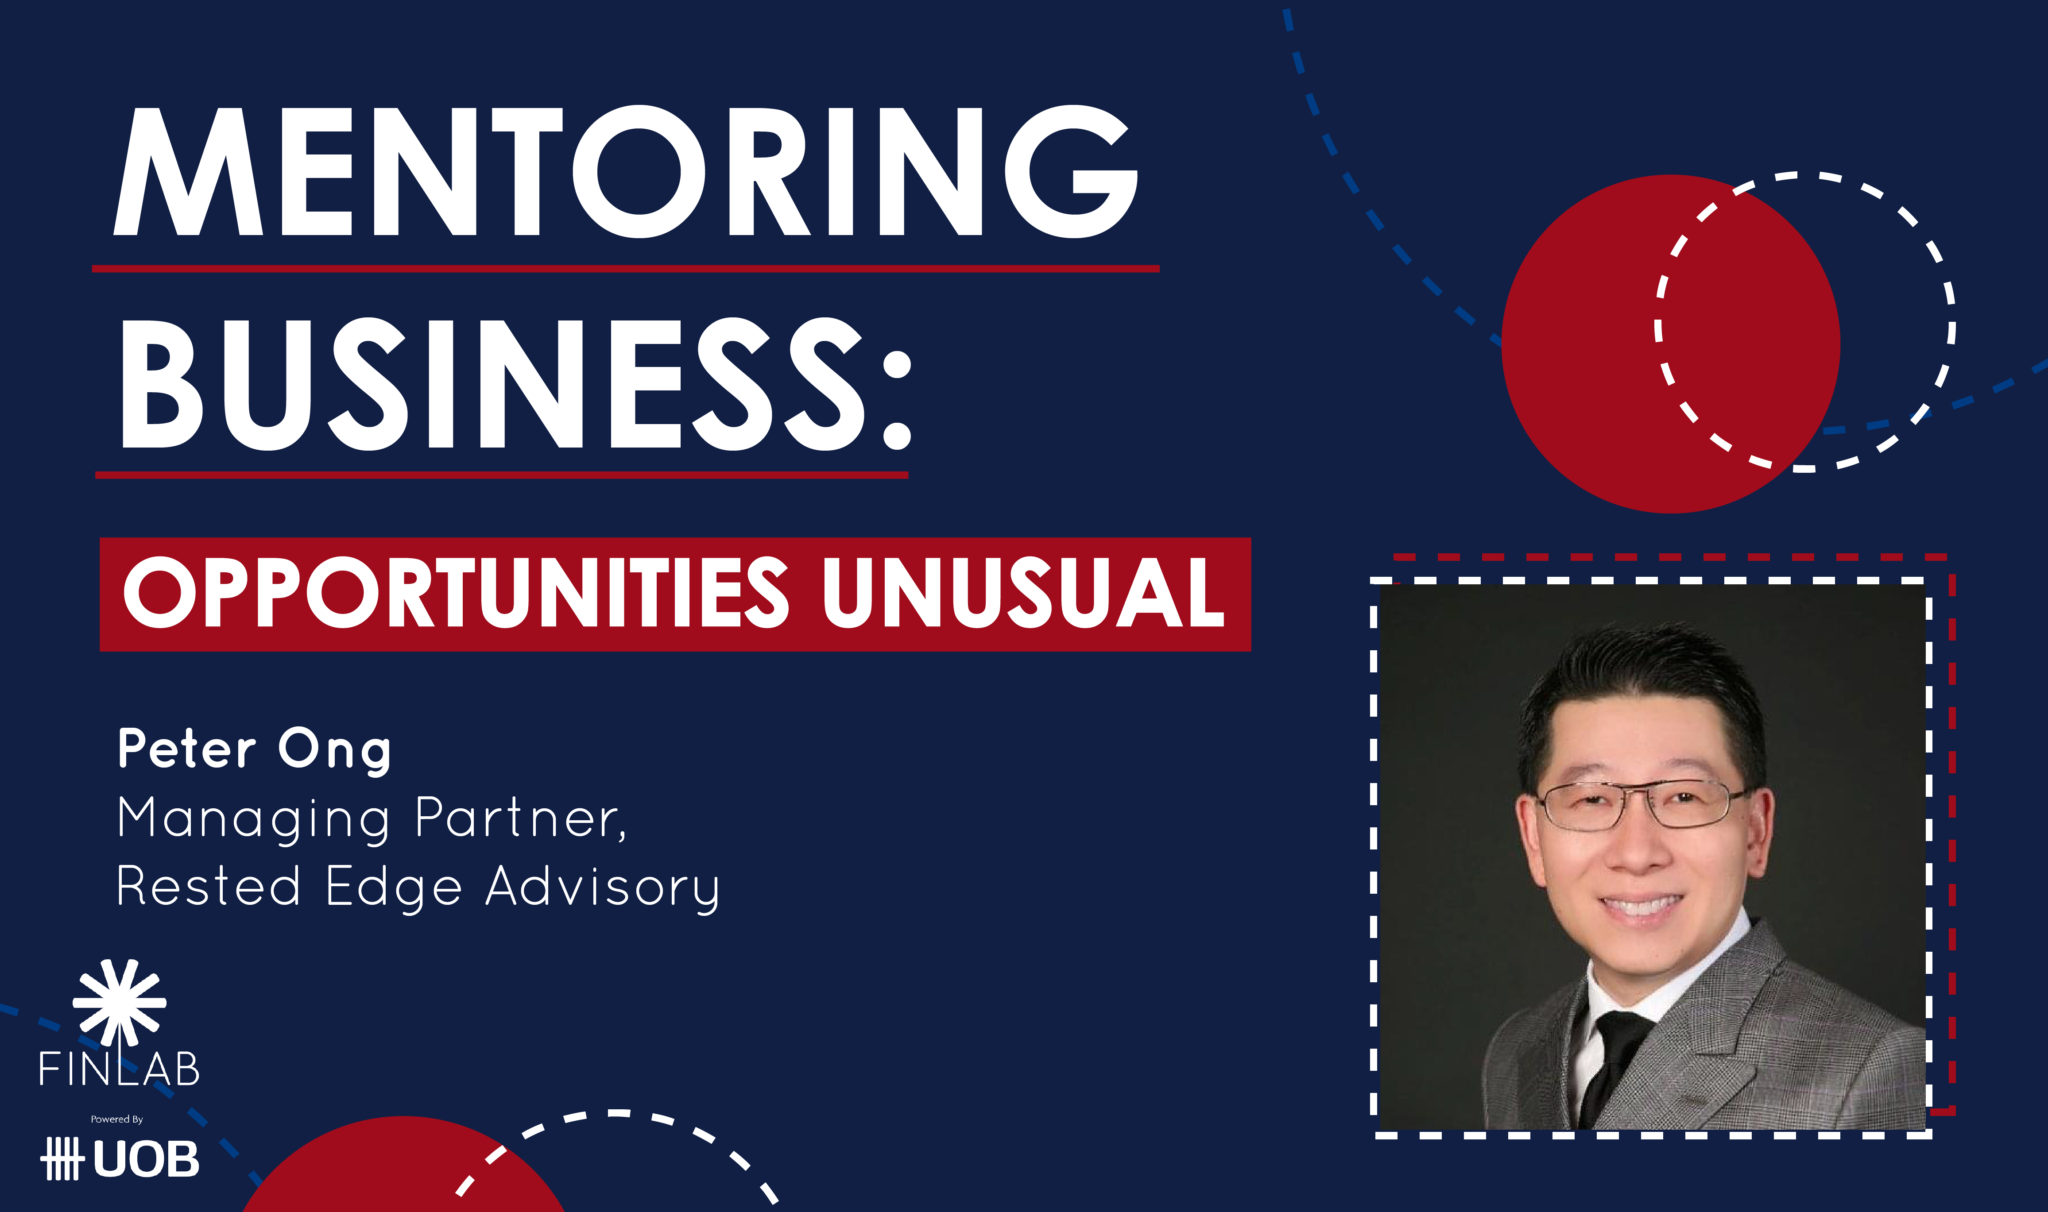 MENTORING BUSINESS SERIES: OPPORTUNITIES UNUSUAL BY PETER ONG, RESTED EDGE ADVISORY